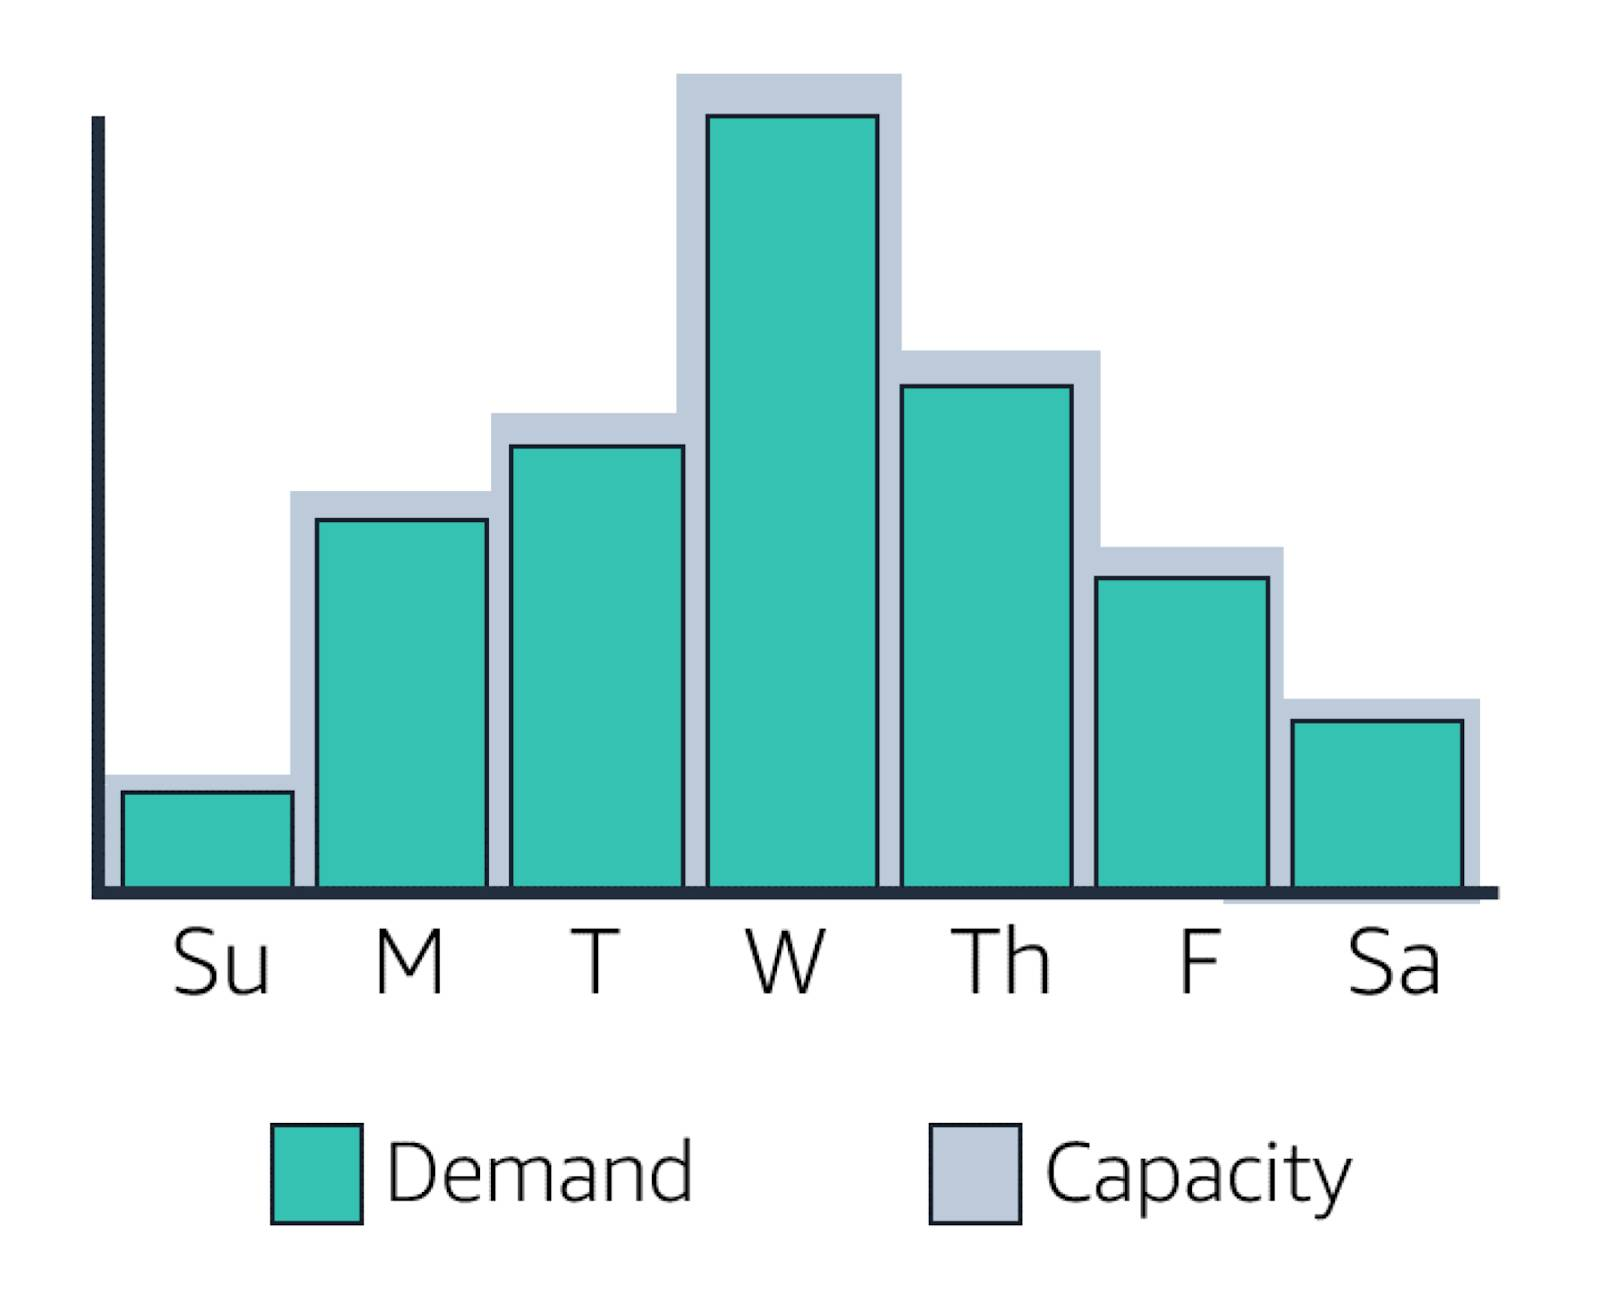 Graph of demand and capacity throughout the week. Demand increases and peaks on Wednesday and then drops off. Capacity increases and decreases to match demand.